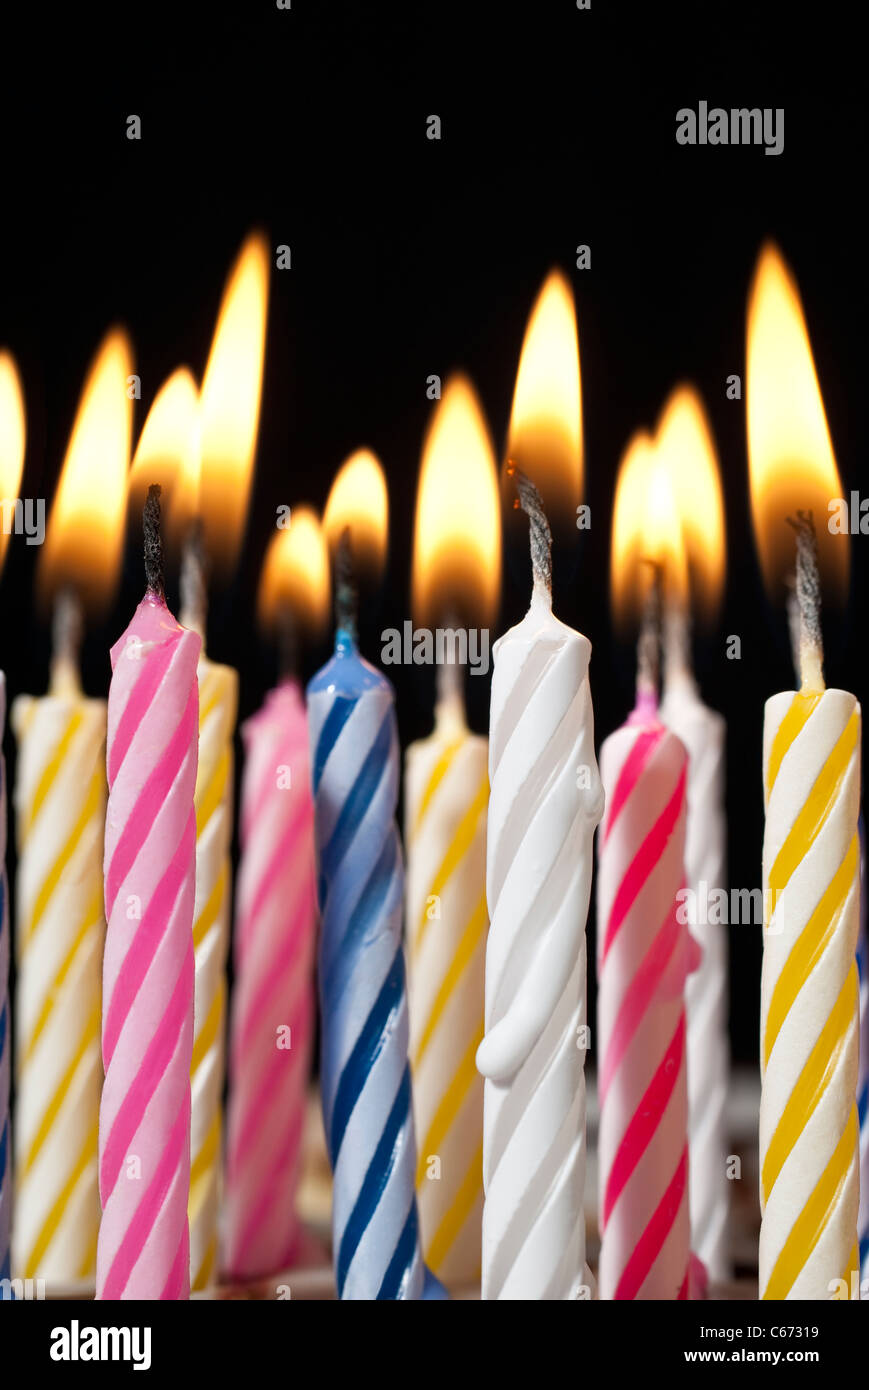 Surreal Image Close Up Of Multiple Candy Colored Lit Birthday Candles